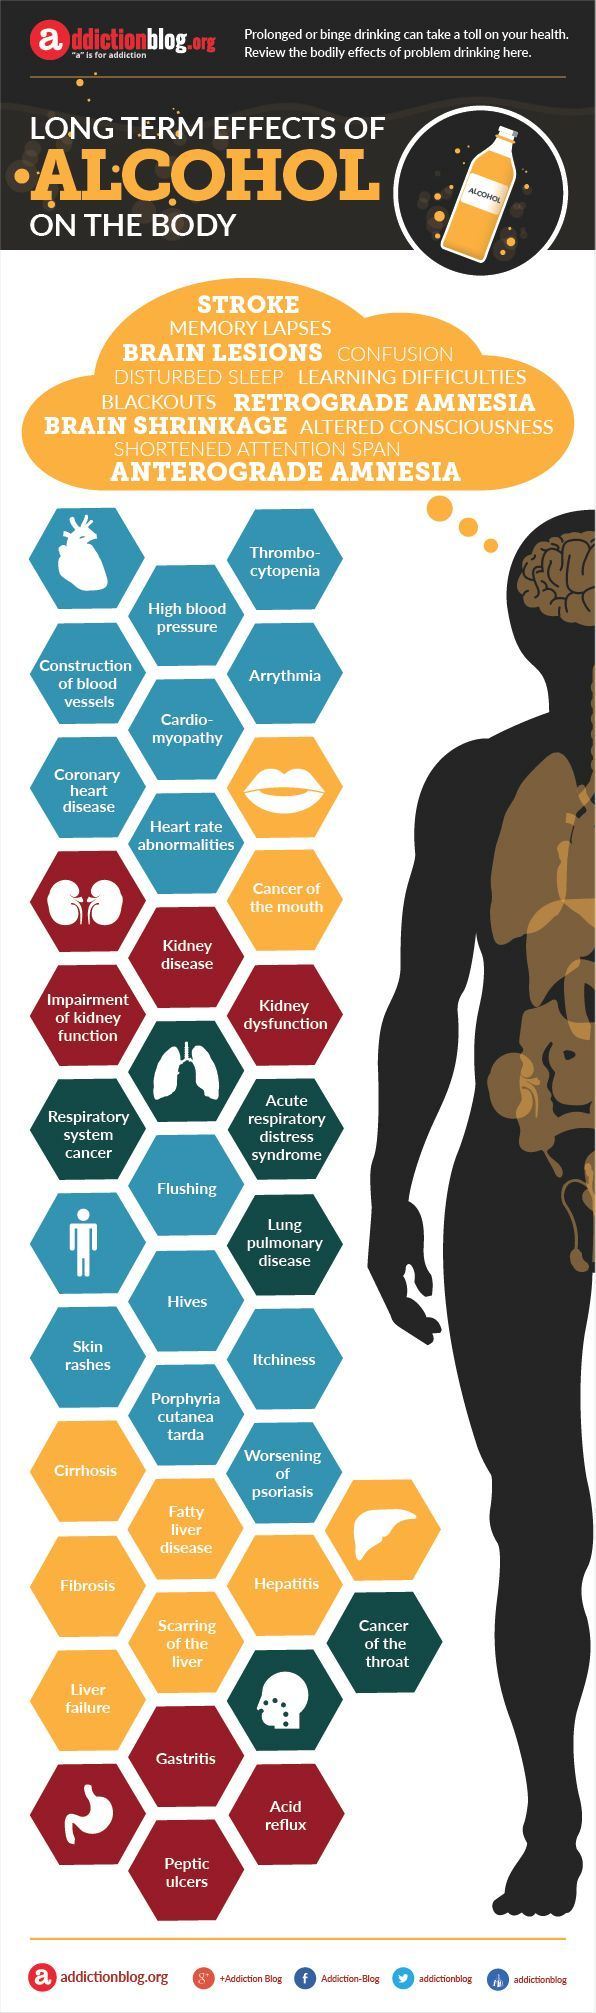 Long term effects of alcohol on the body. People who regularly drink too much alcohol are putting their health at risk. Some of the harmful effects may not be apparent immediately and stay hidden until years later. Here is a list of possible alcohol effects on the body as a side-effect of long-term drinking: